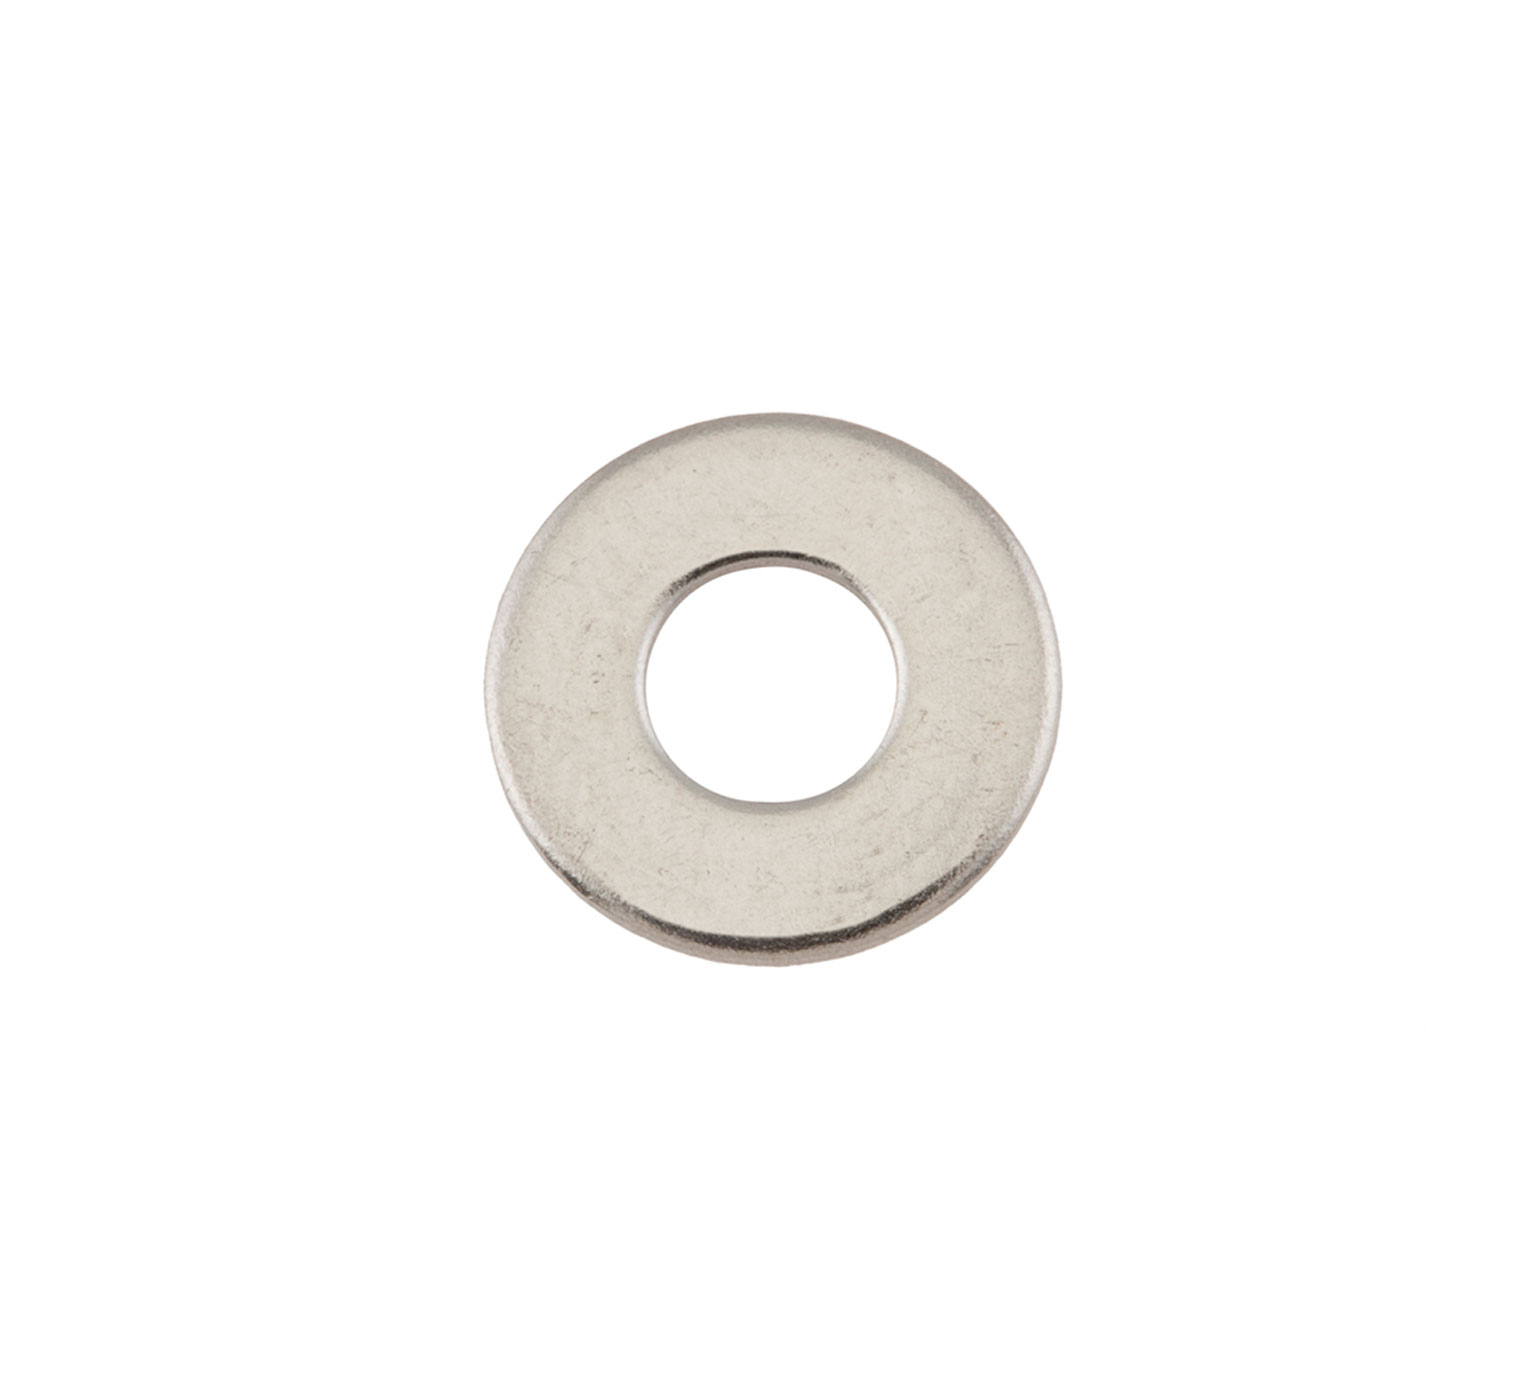 01683 Stainless Steel Washer - 0.219 ID x 0.5 OD x 0.049 in alt 1